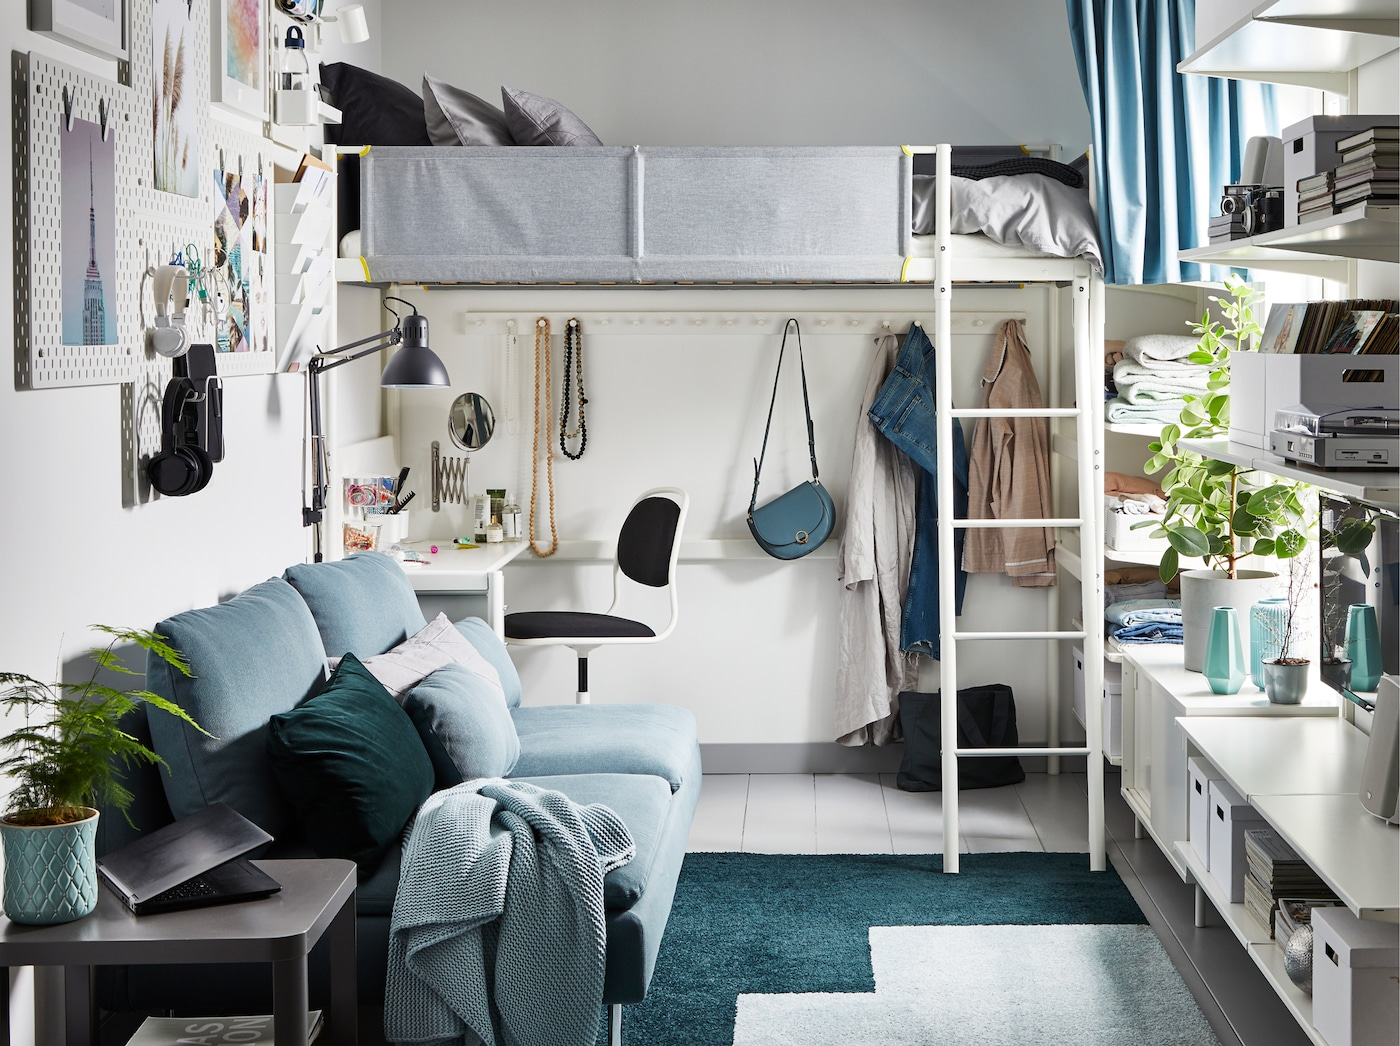 A small one-bedroom-apartment that's grey, green and white and has a loft bed that has a desk under it.